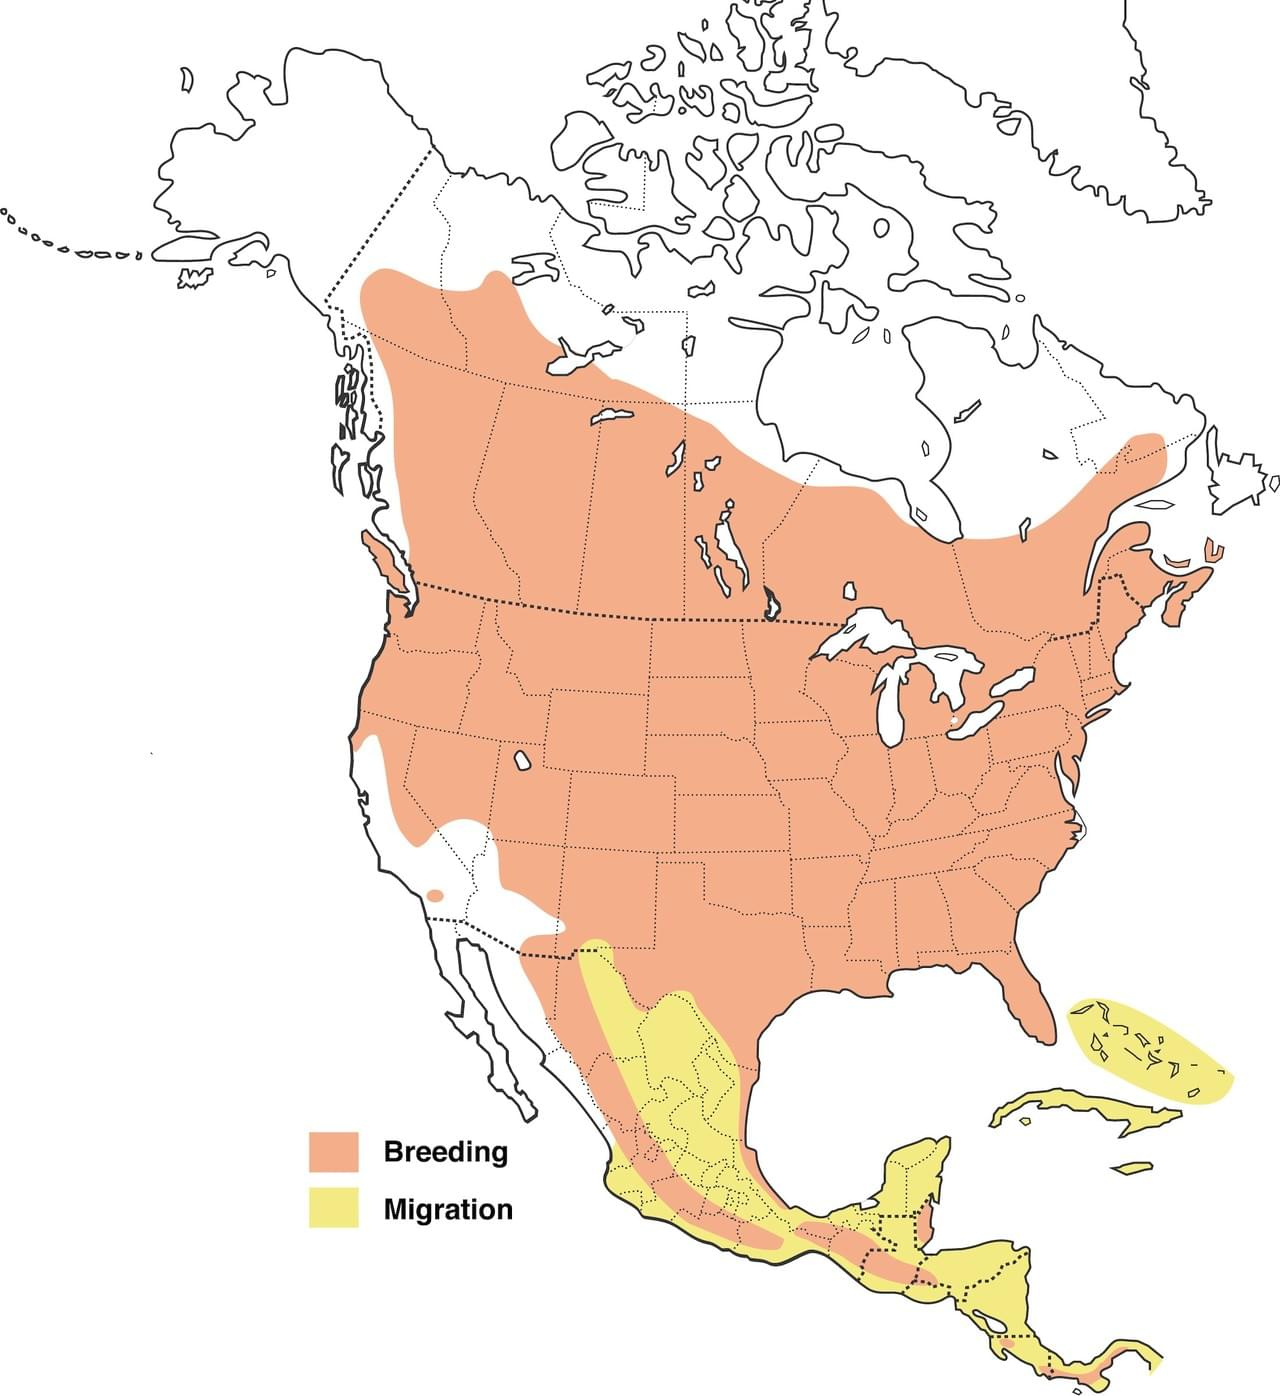 Common Nighthawk range map and migration info provided by Cornell Laboratory of Ornithology